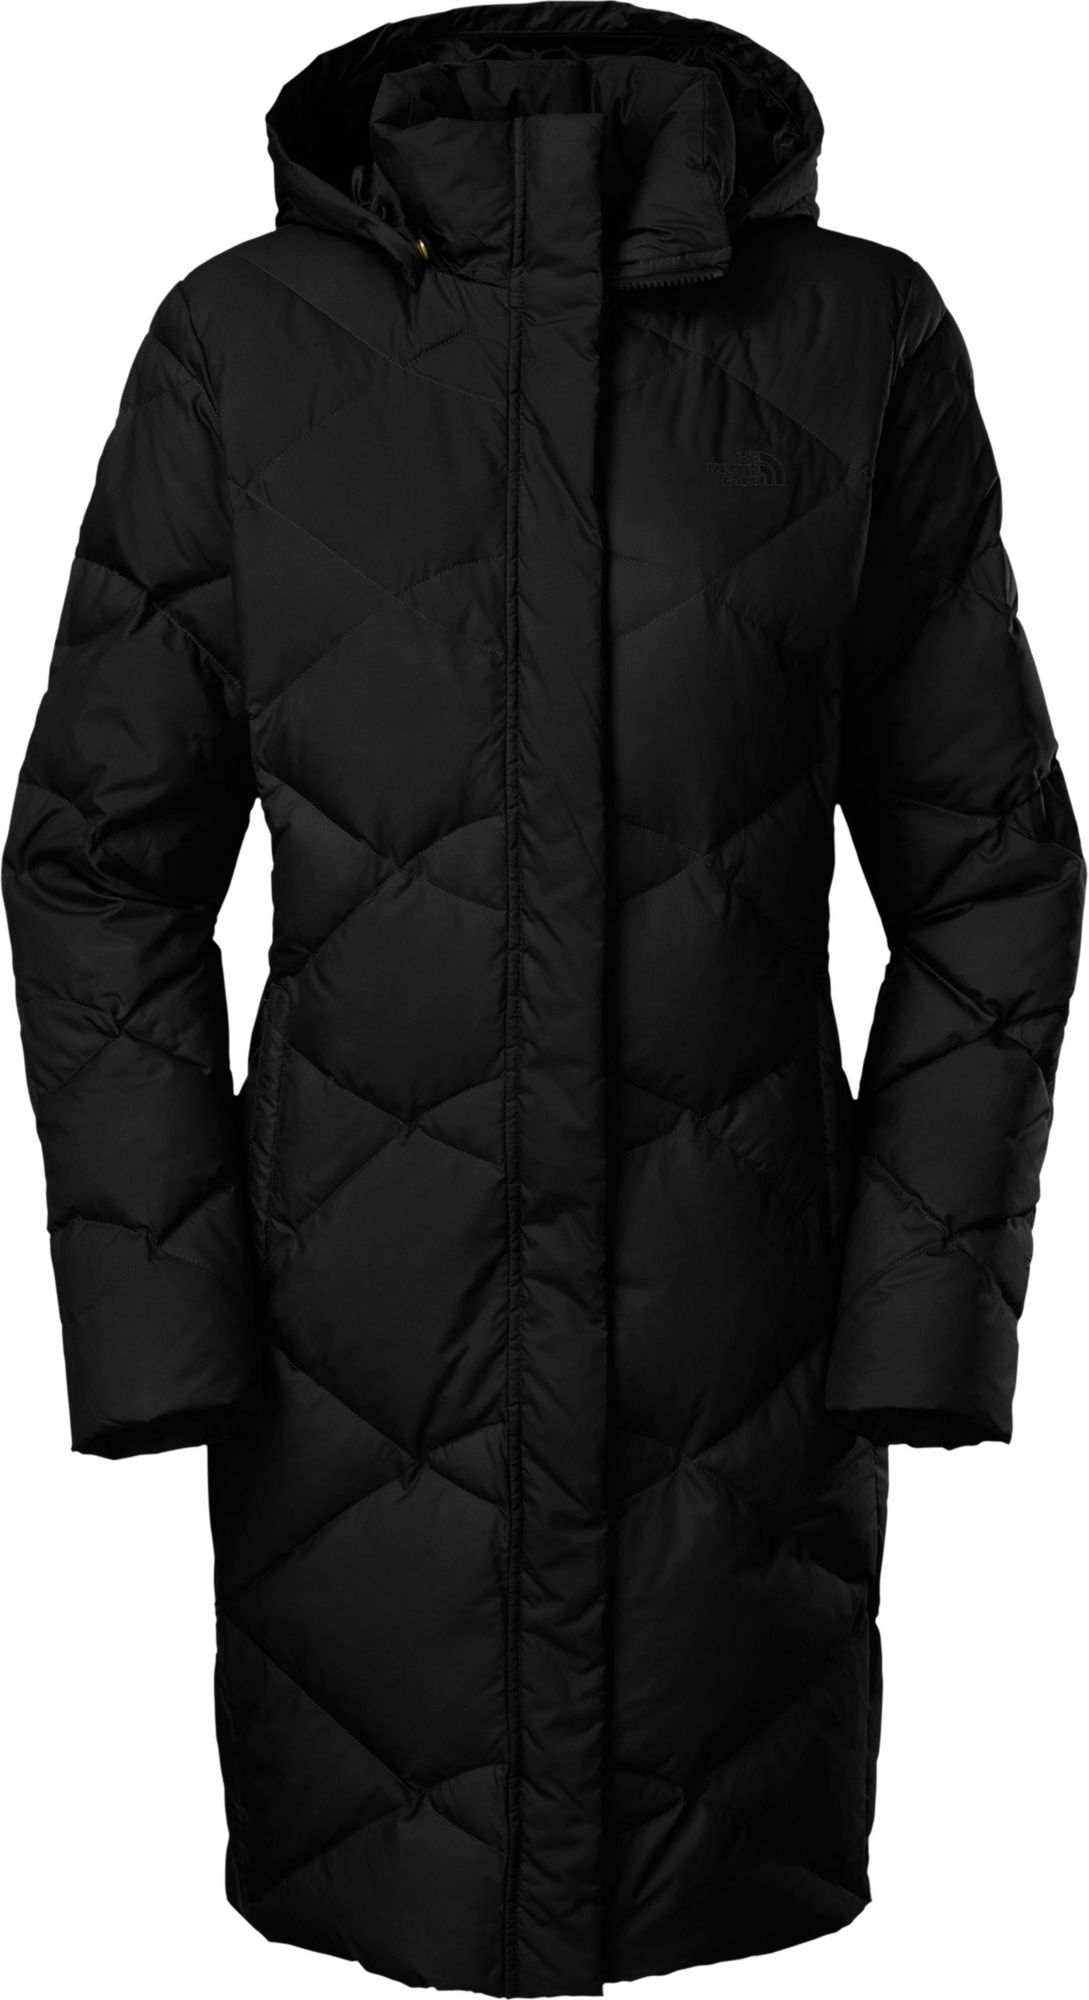 North face arctic parka medium black